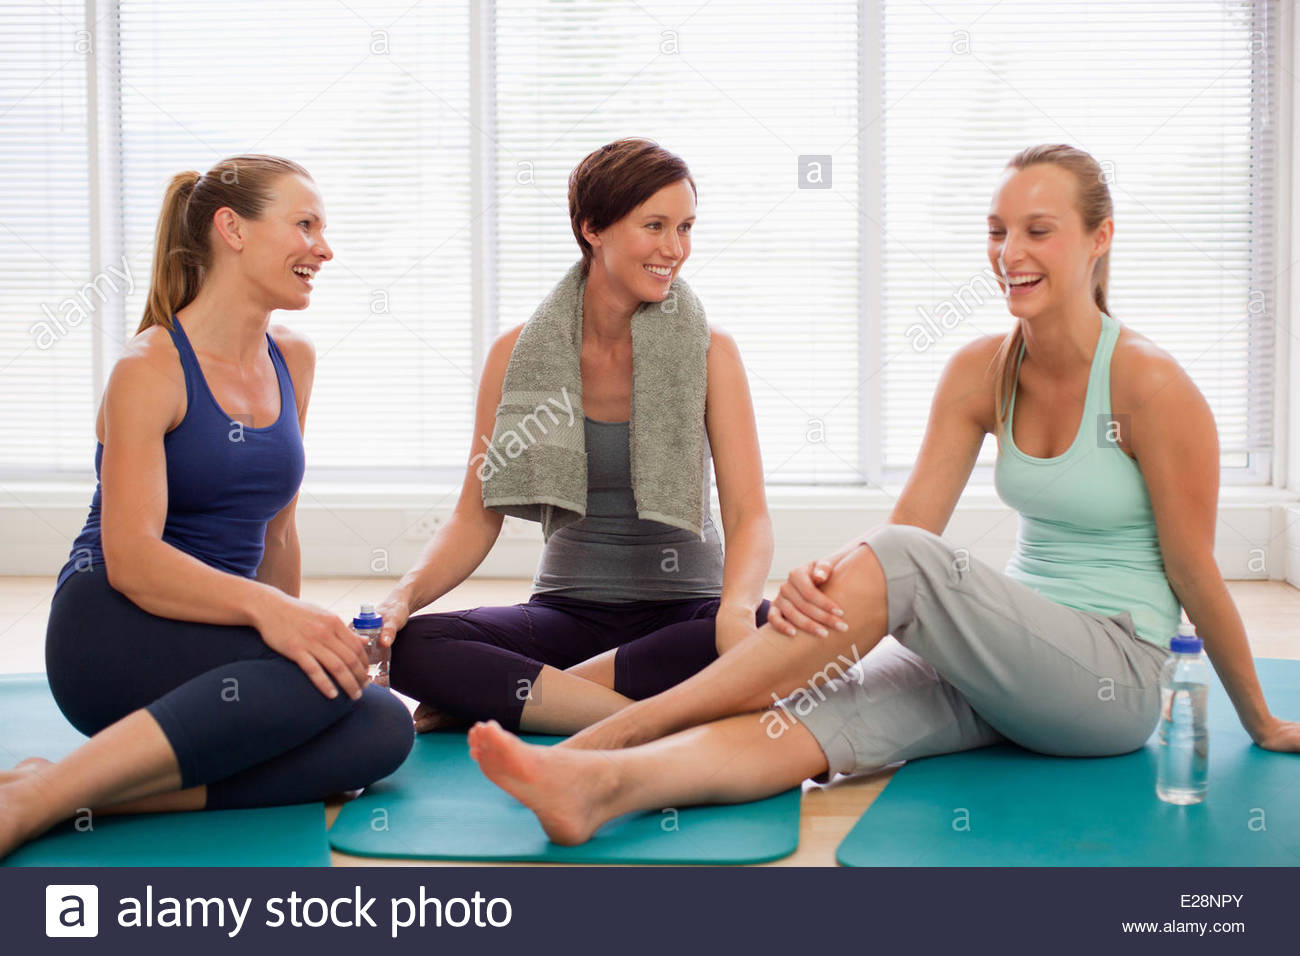 Smiling women resting on exercise mats - Stock Image